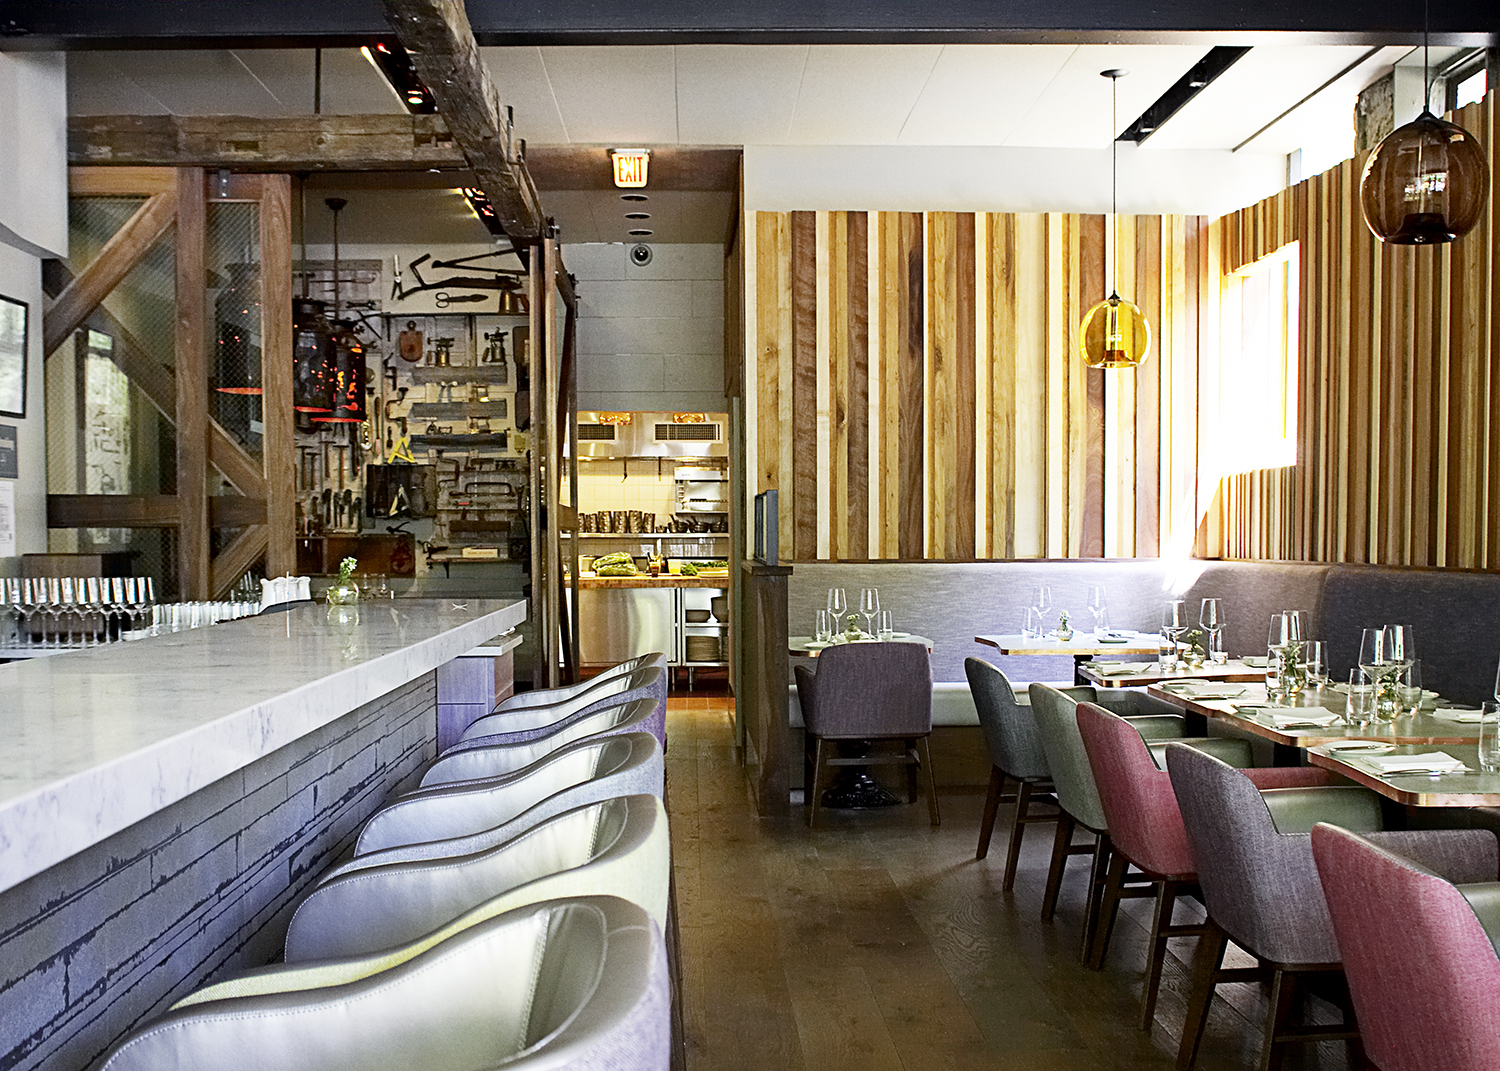 Blenheim  event space at Blenheim Restaurant in New York City, NYC, NY/NJ Area